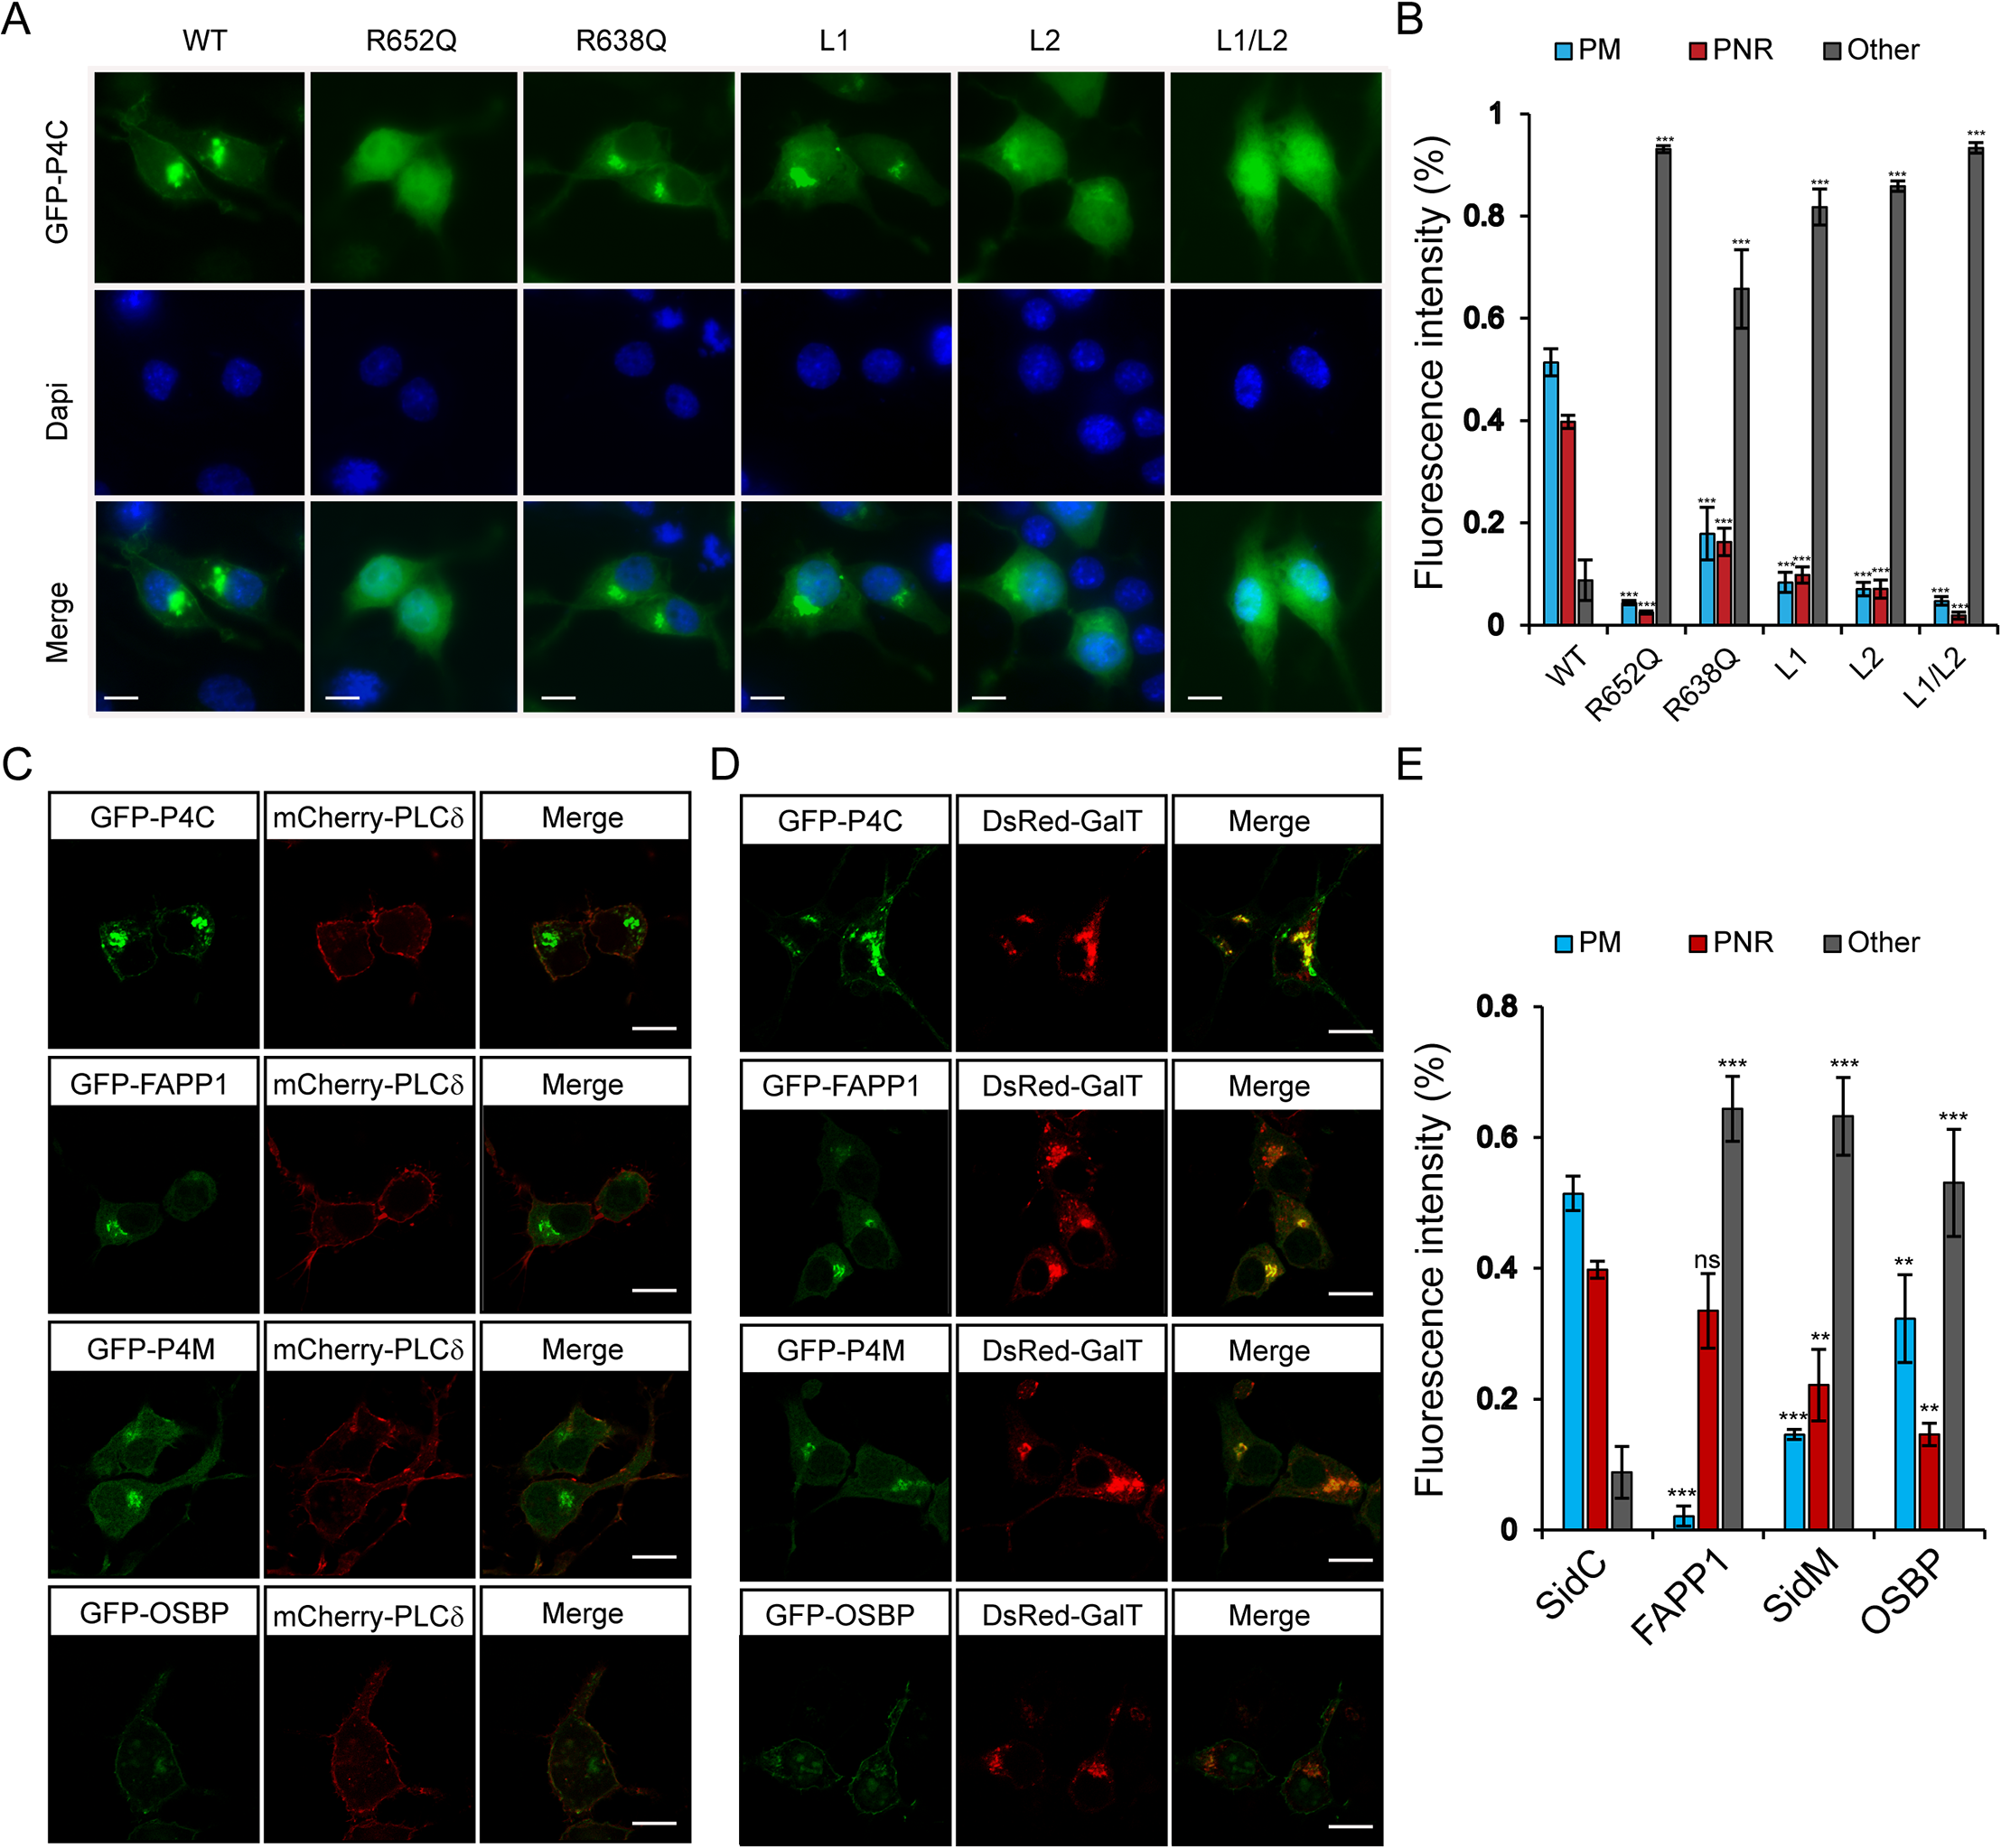 Intracellular localization of fluorescent protein fusions of the P4C domain from SidC.